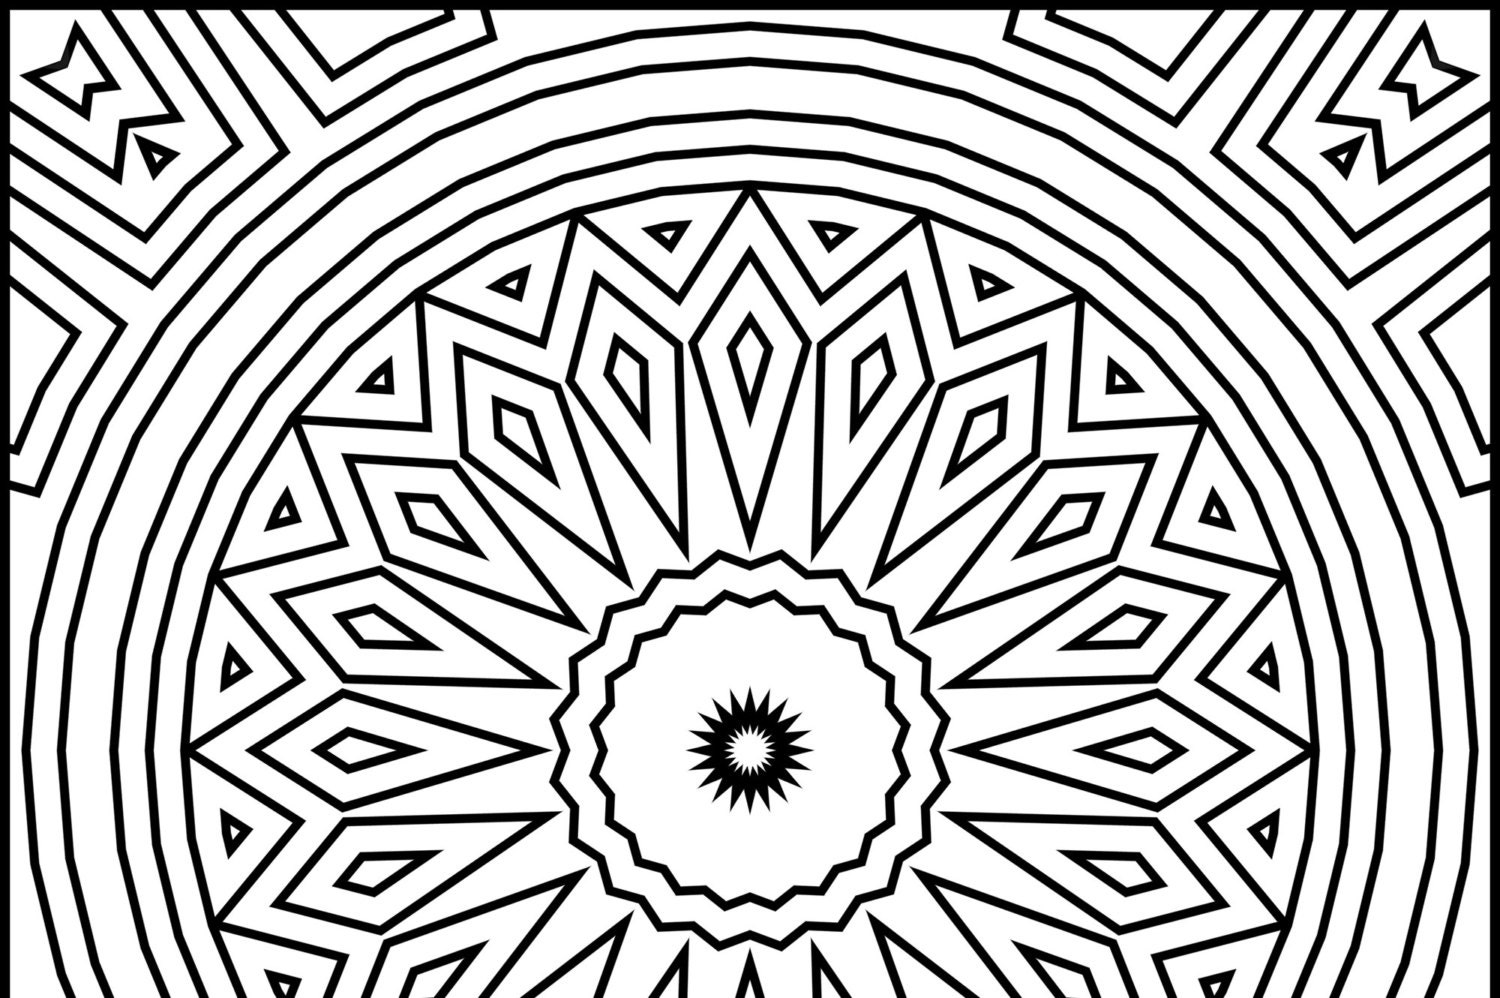 square mandala coloring pages - photo#1